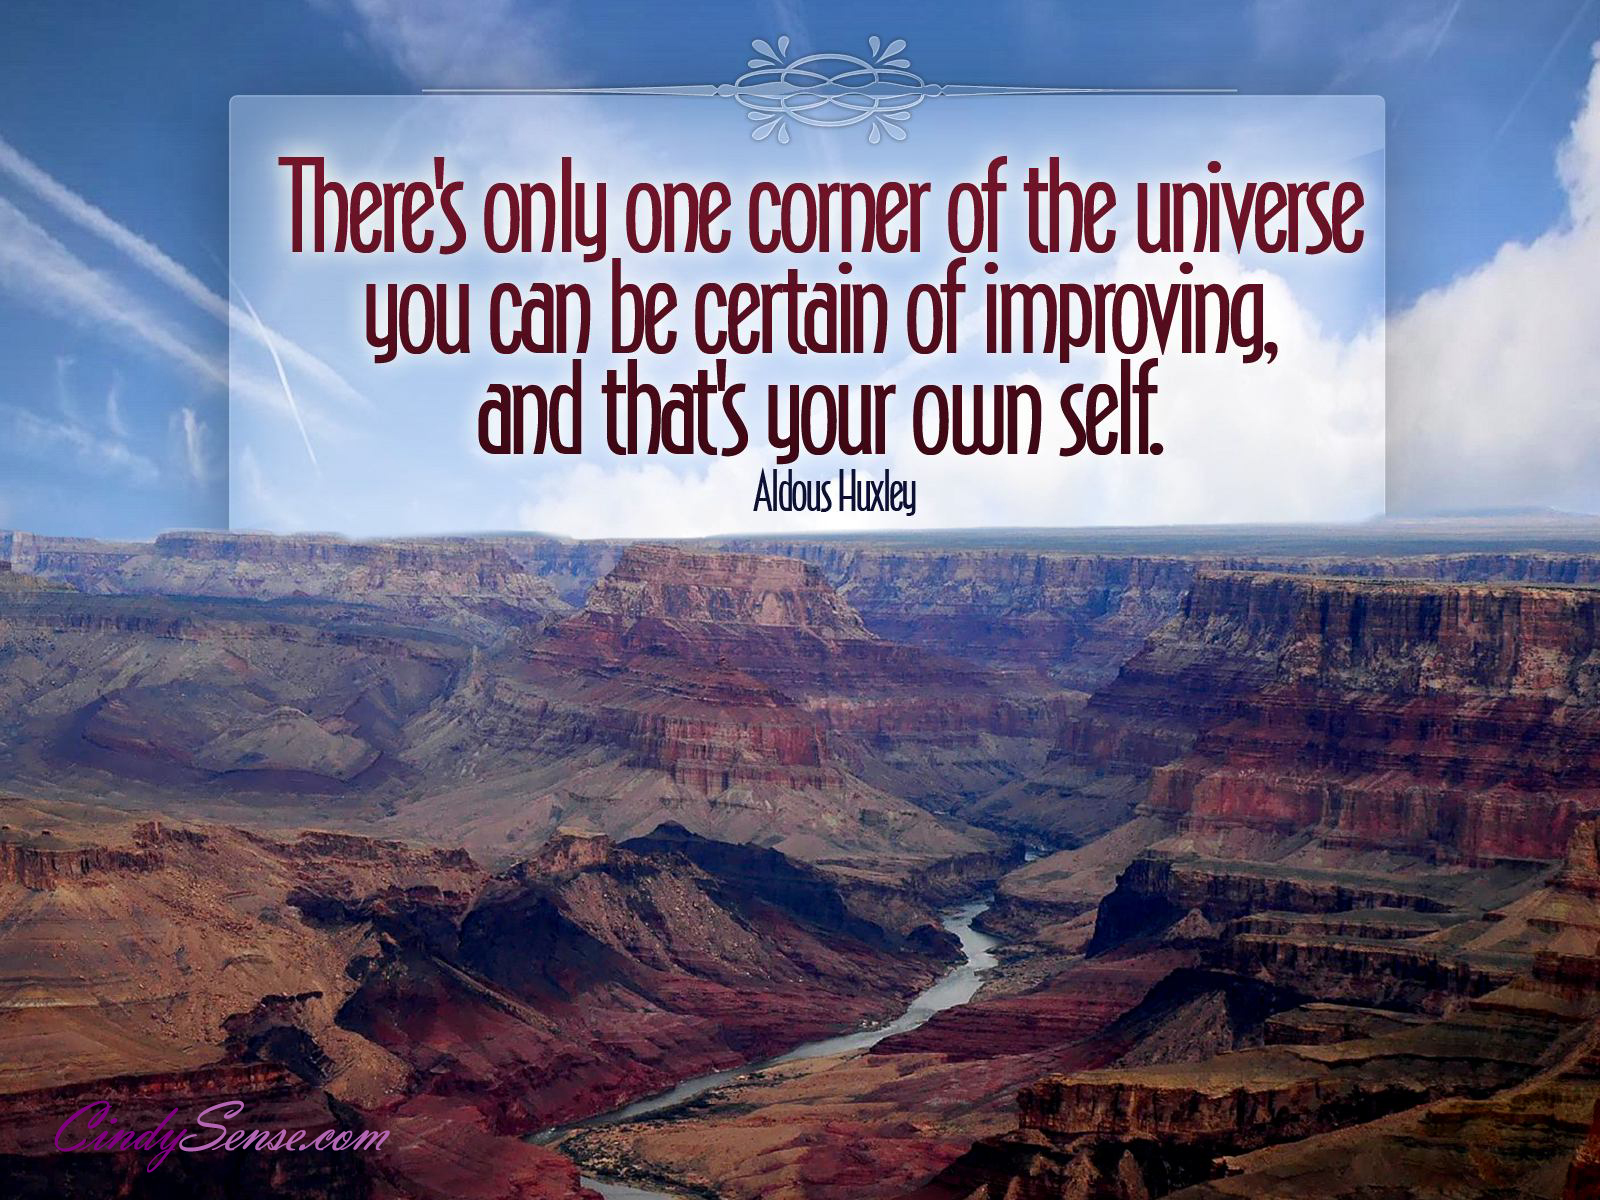 There's Only One Corner Of The Universe, You Can Be Certain Of Improving And That's Your Own Self